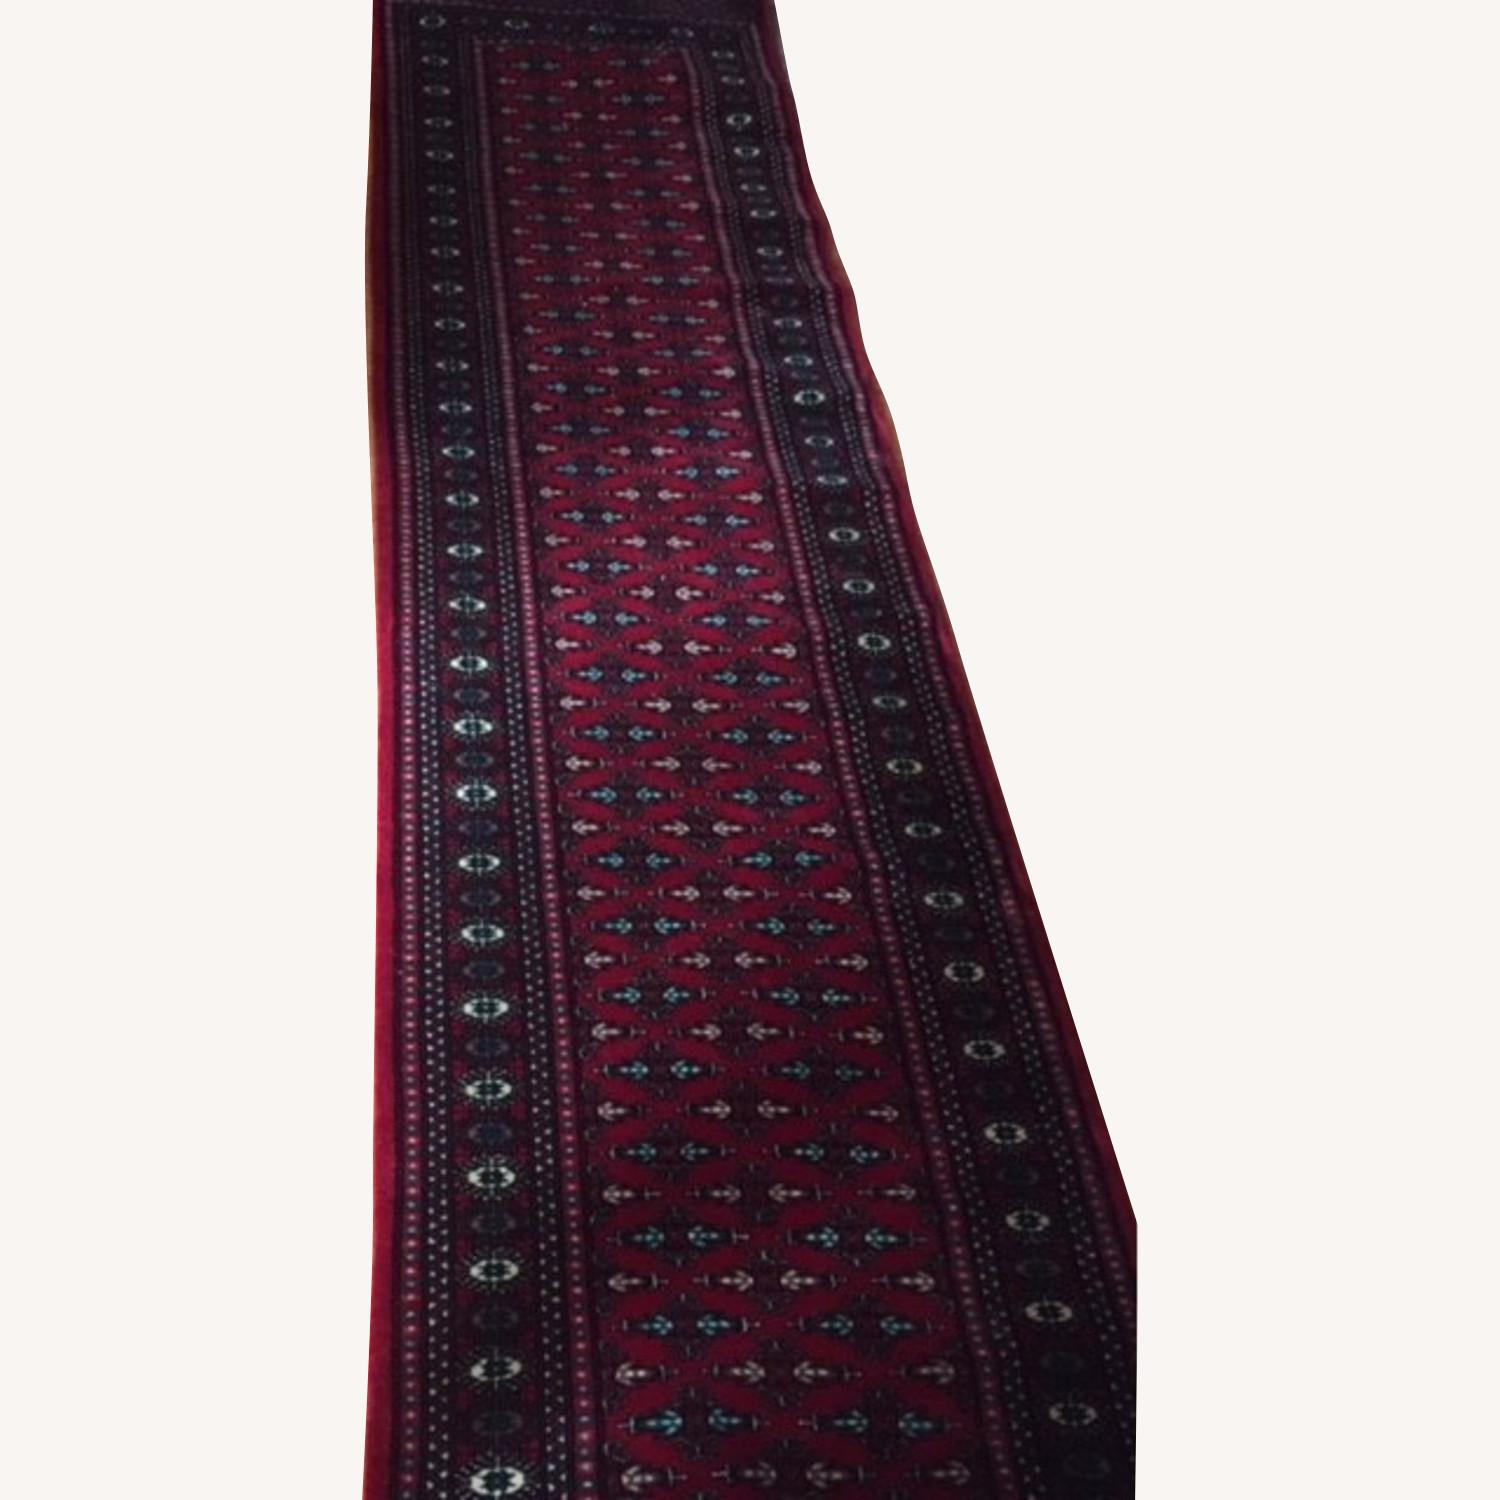 Kilim Rugs Persian Runner Rug